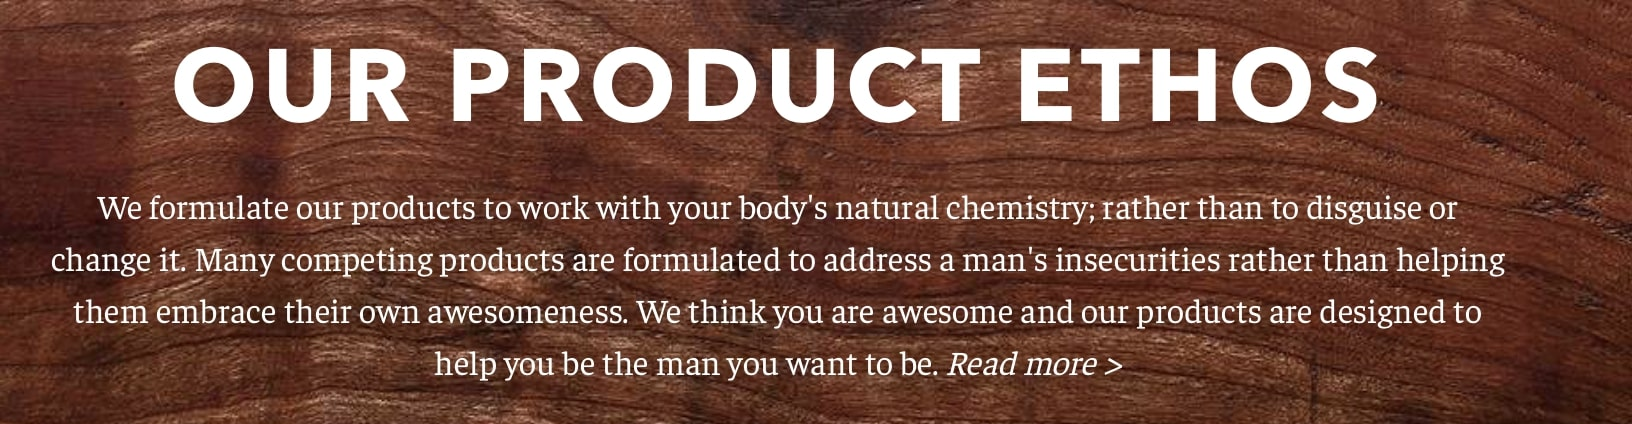 beardbrand unique selling proposition